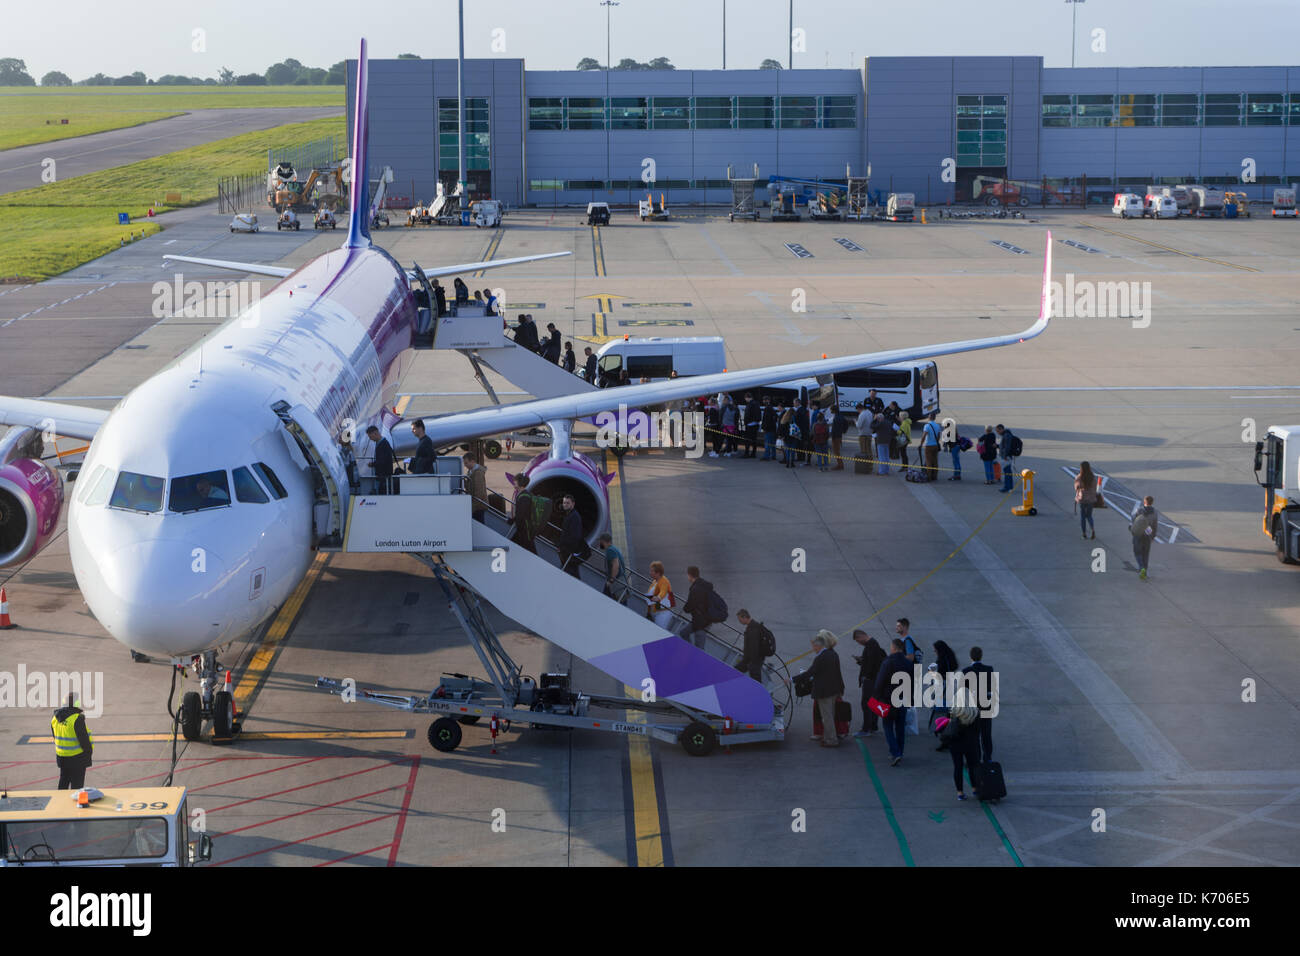 Passengers Boarding A Wizz Air Airplane At London Luton Airport In Stock Photo Alamy